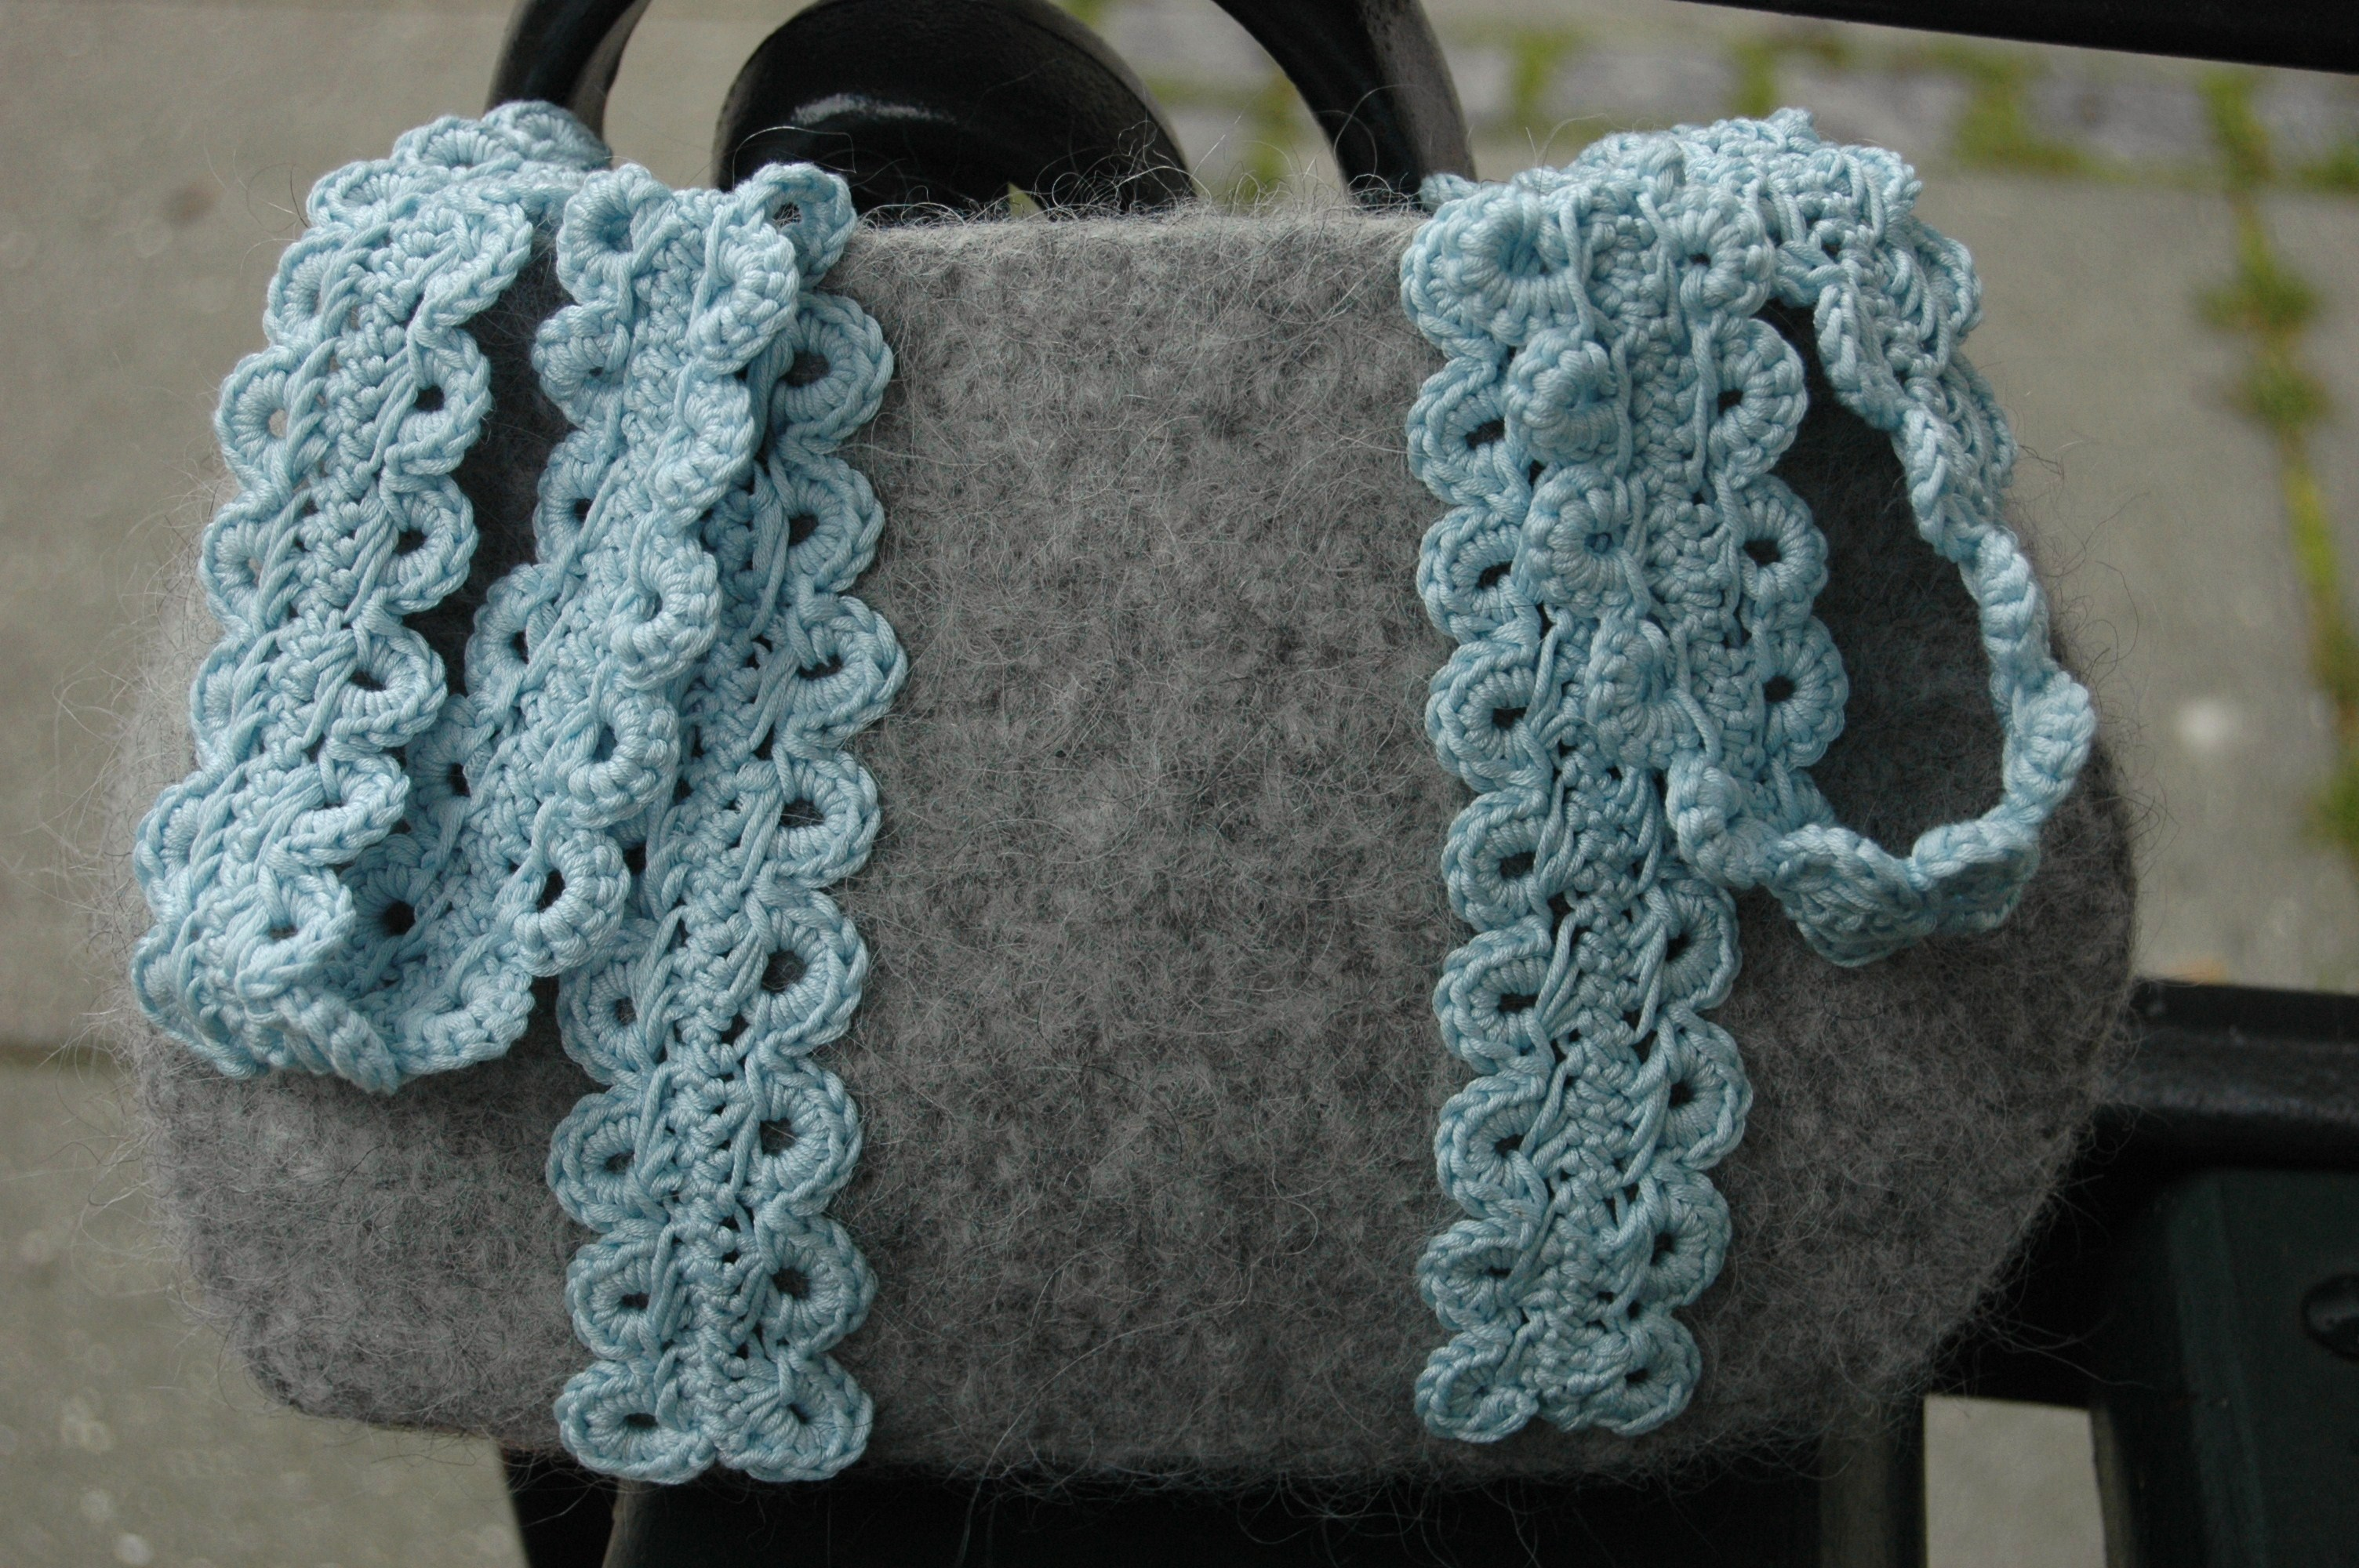 Crochet Net Bag Pattern Free : CROCHET FELTED PURSE PATTERNS Free Patterns